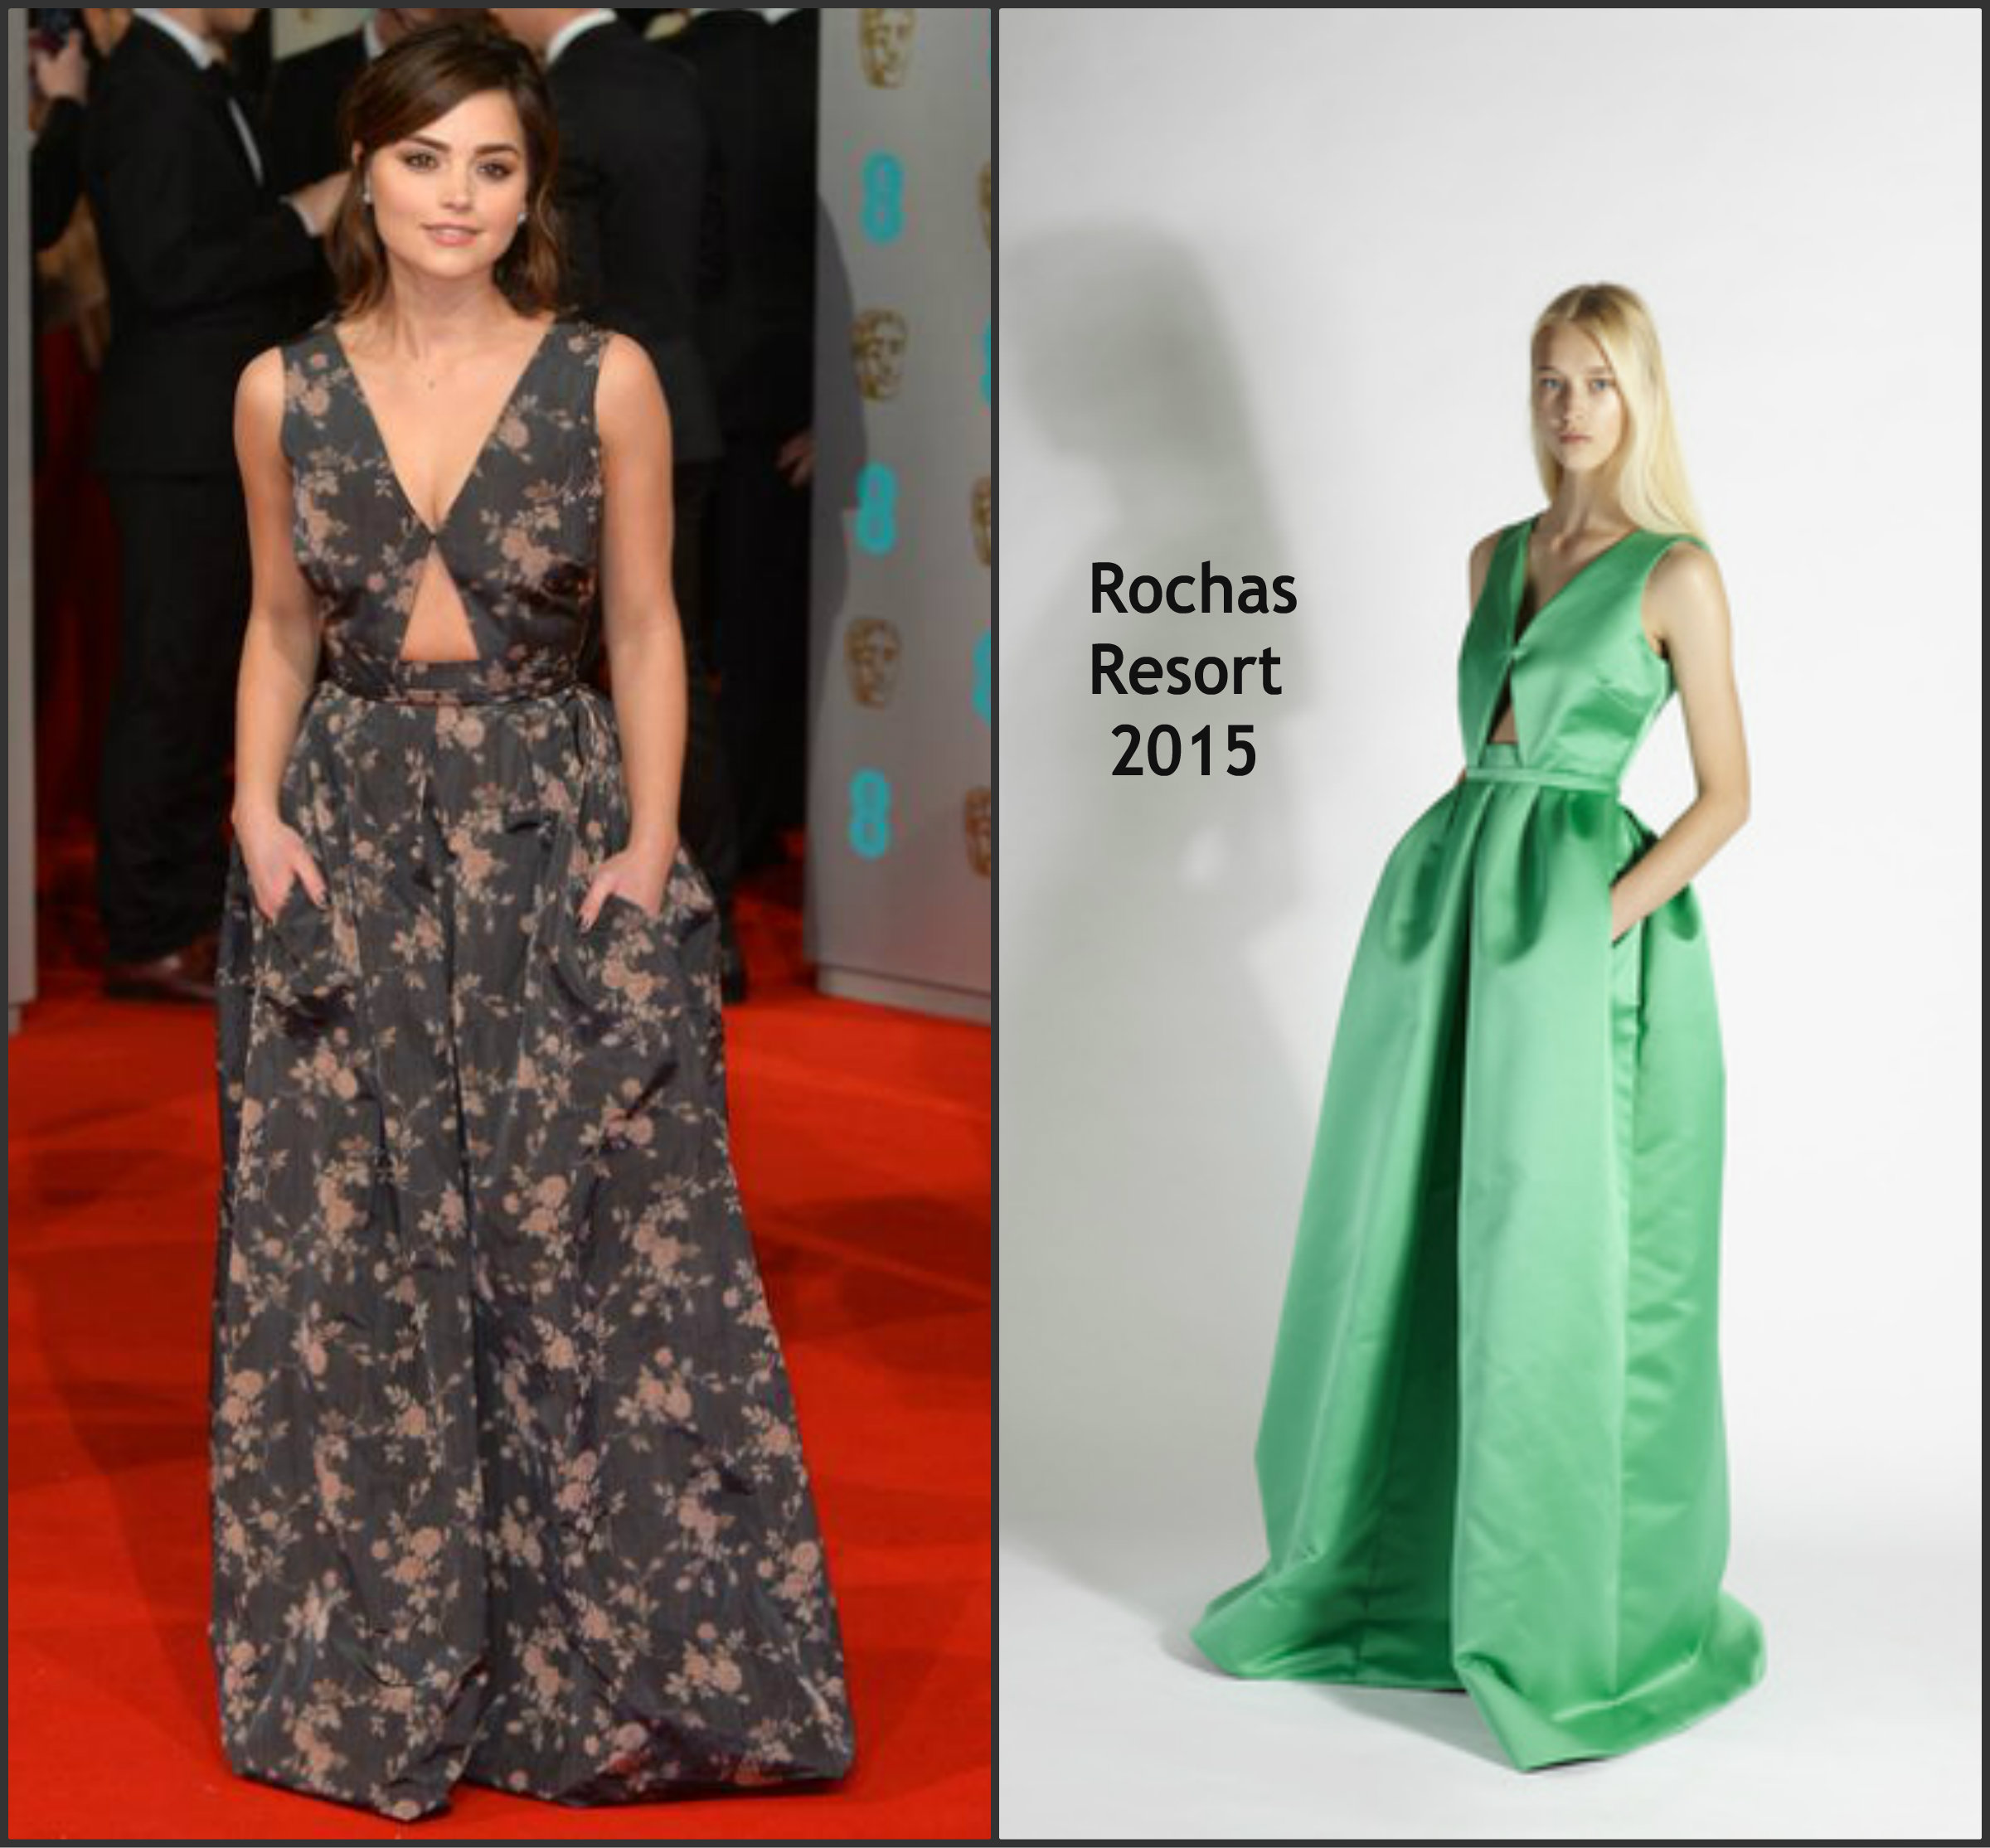 Jenna-Coleman-In-Rochas-at-the-2015-BAFTAs